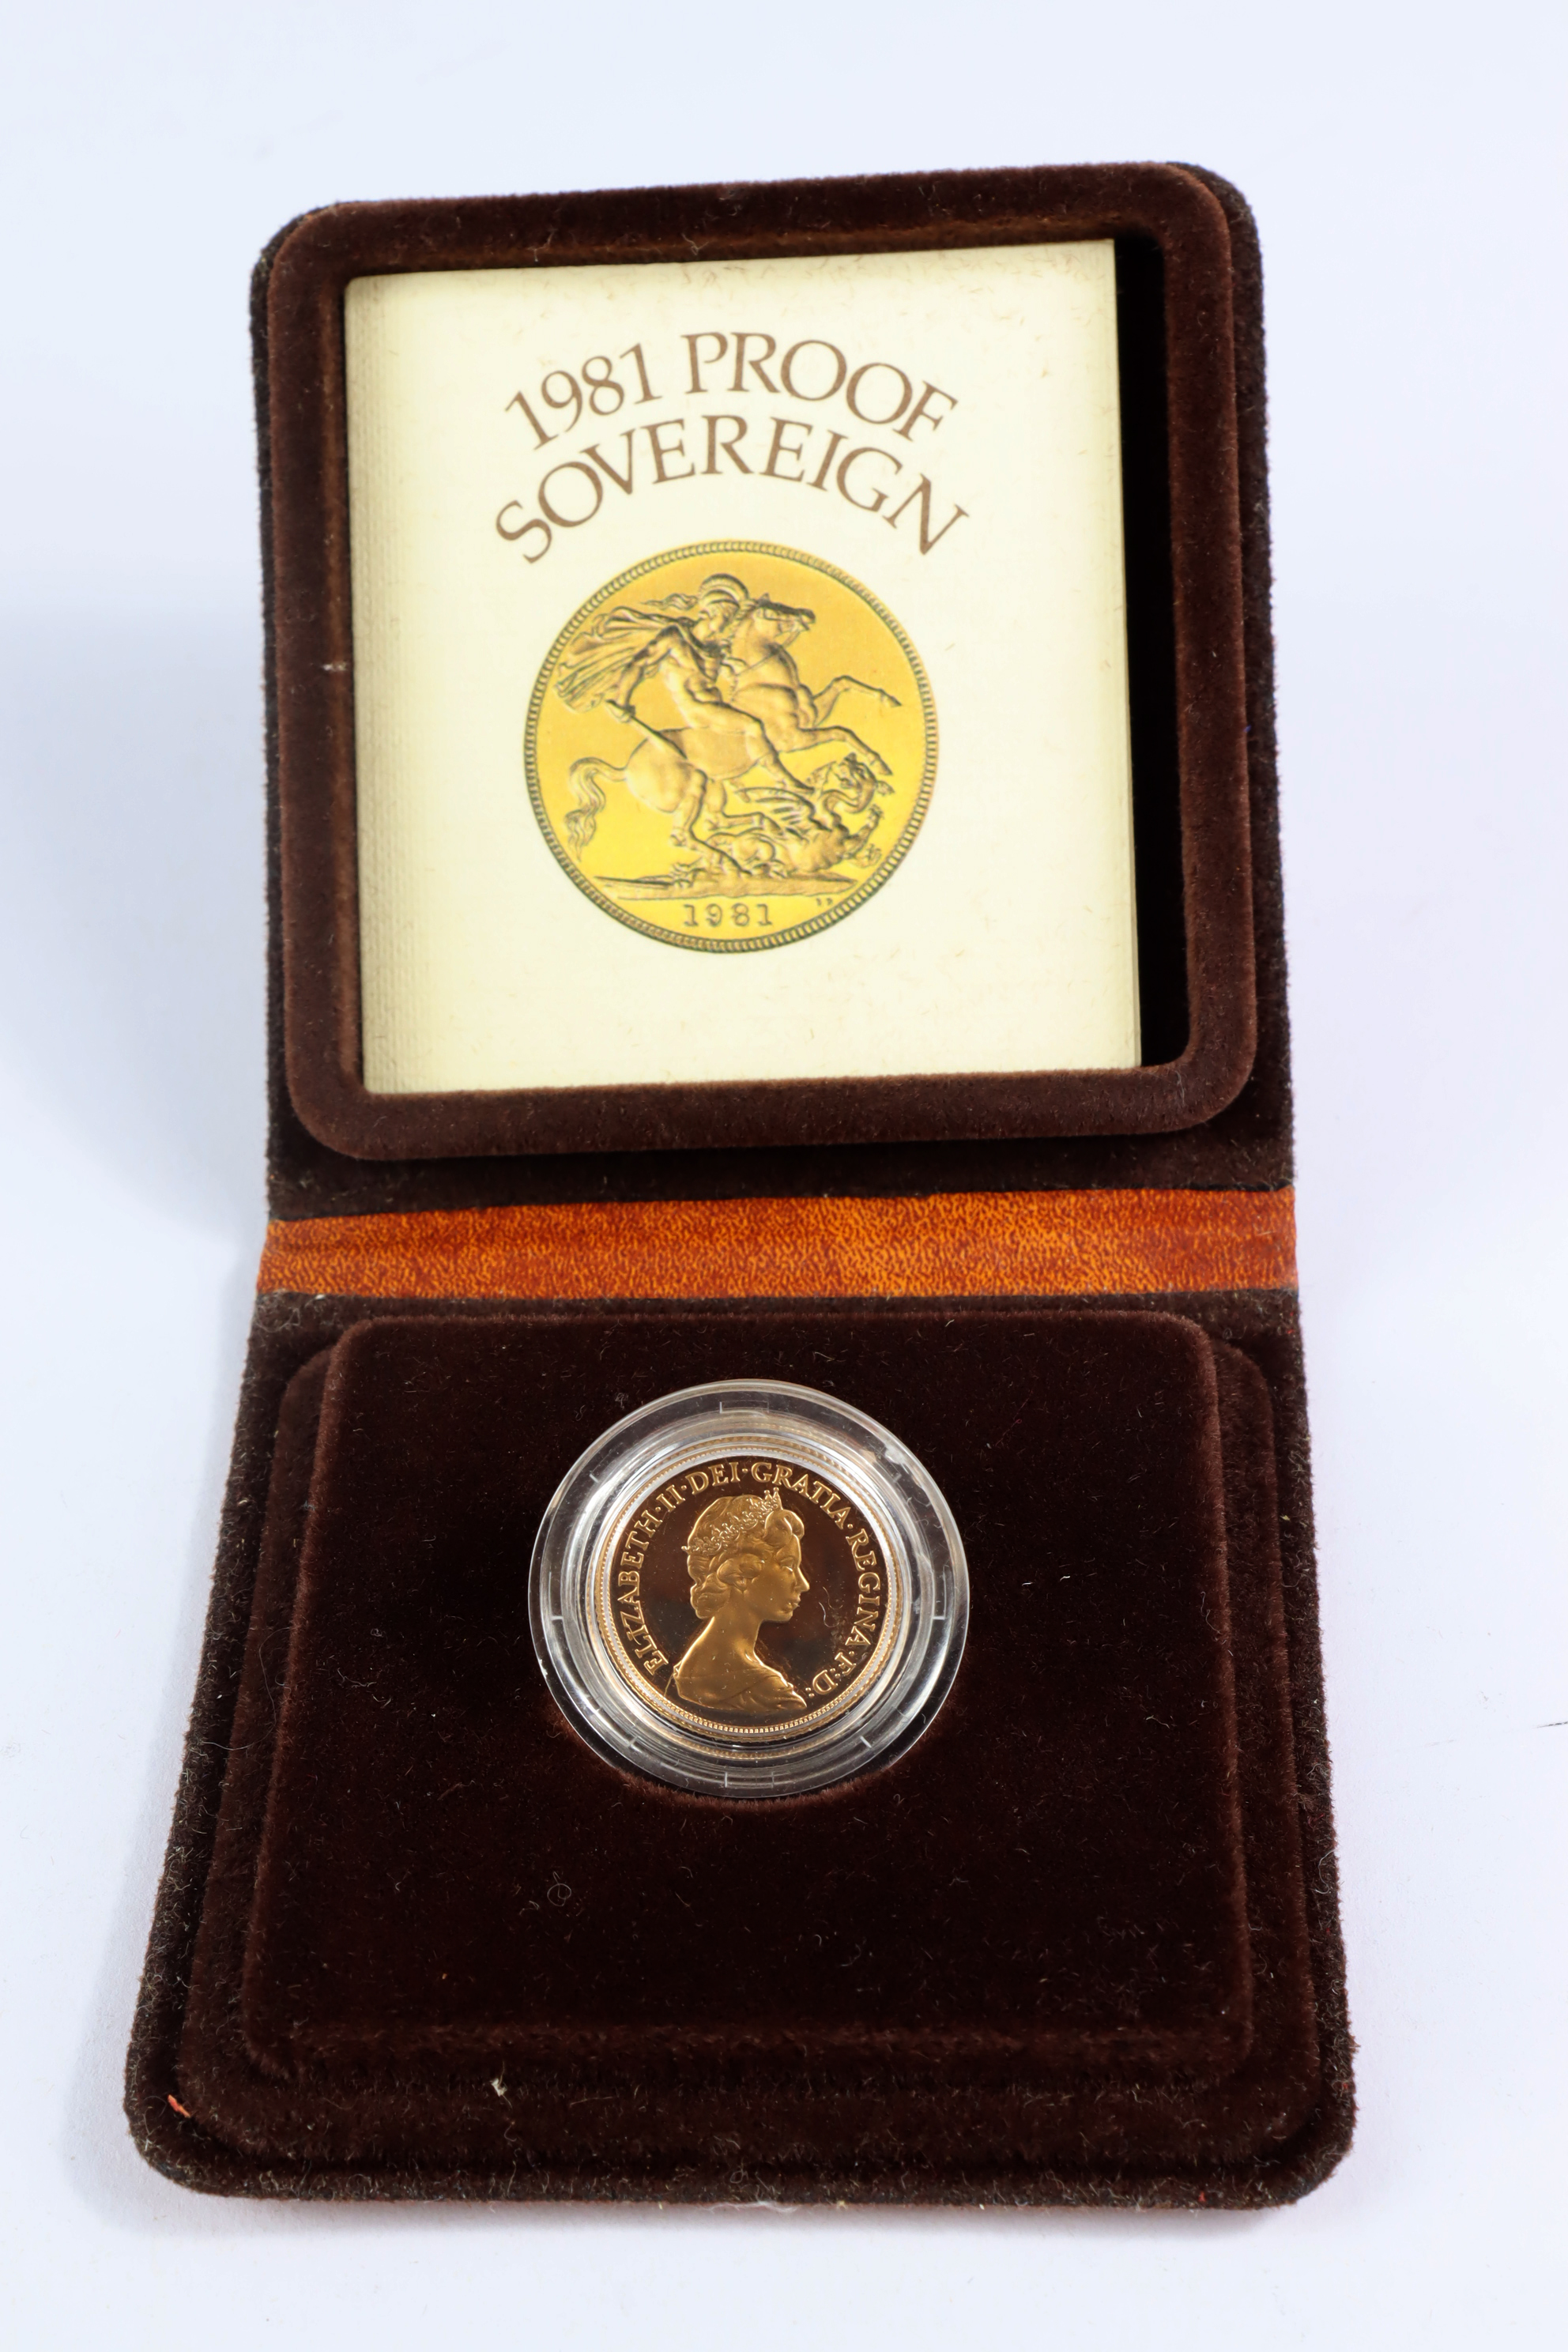 Sovereign 1981 Proof FDC boxed as issued